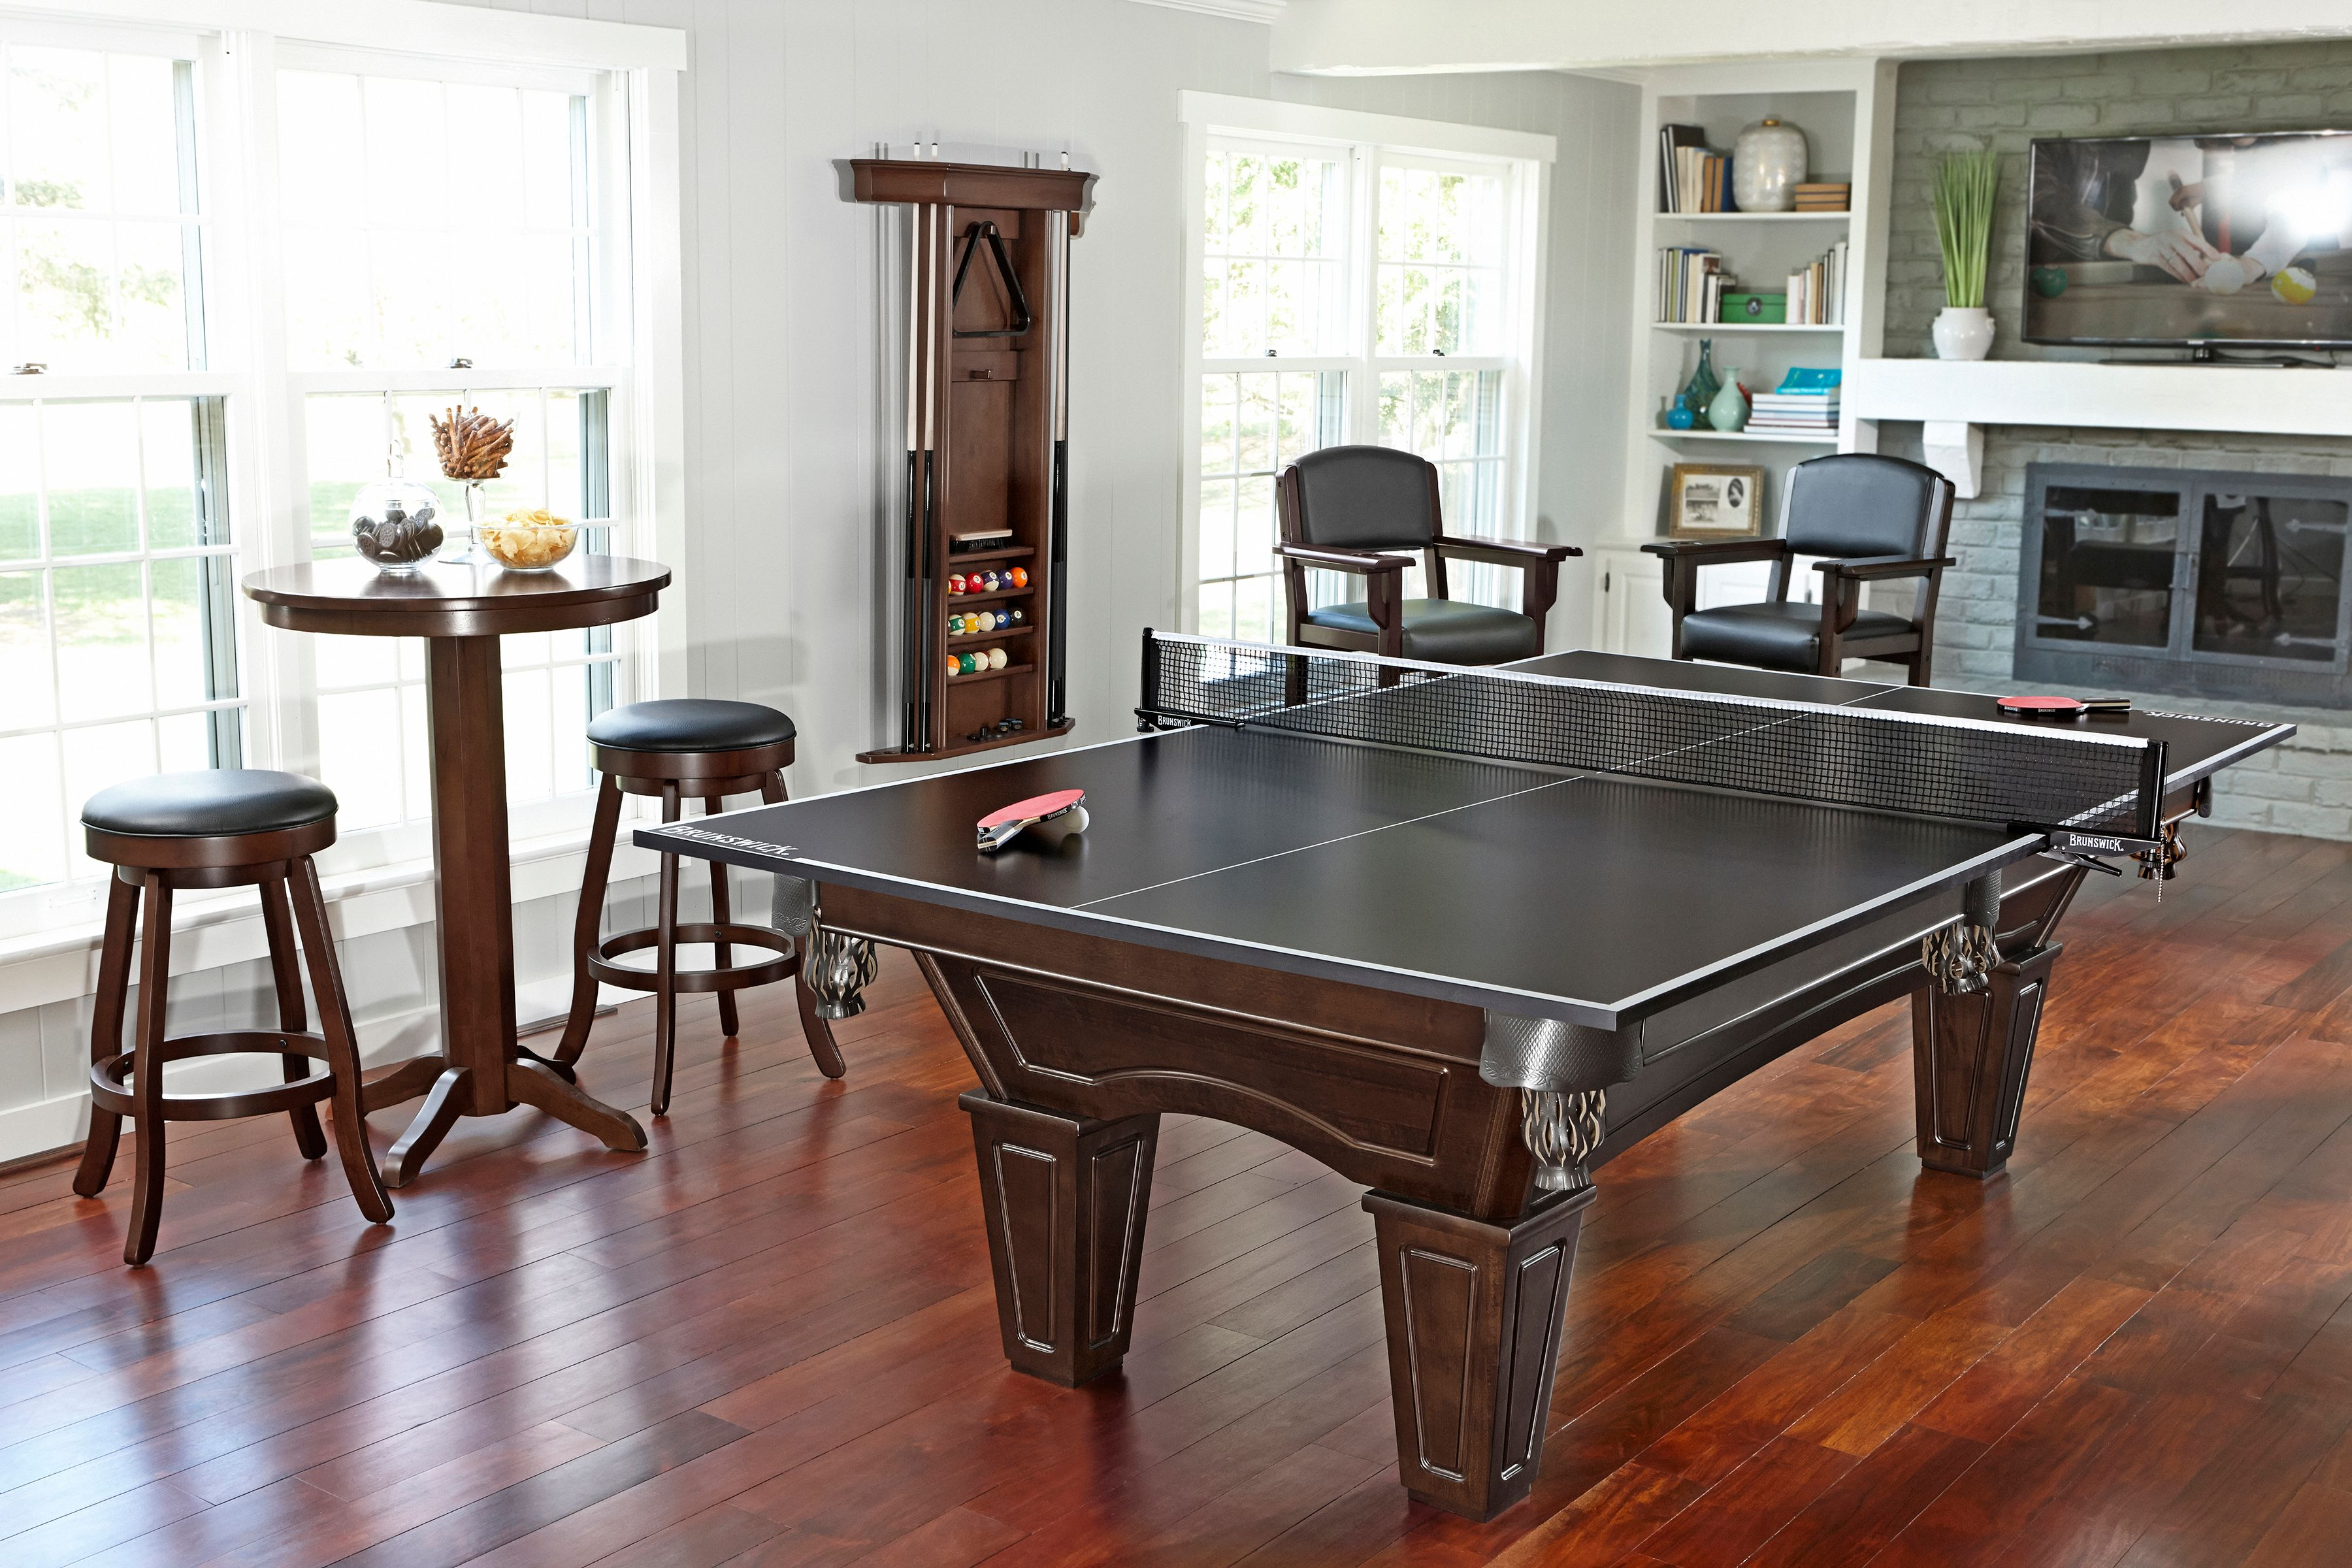 Conversion Top Table Tennis Accessories And A Handsome Wall Rack To Ingly All Of The Included In Contender Play Package